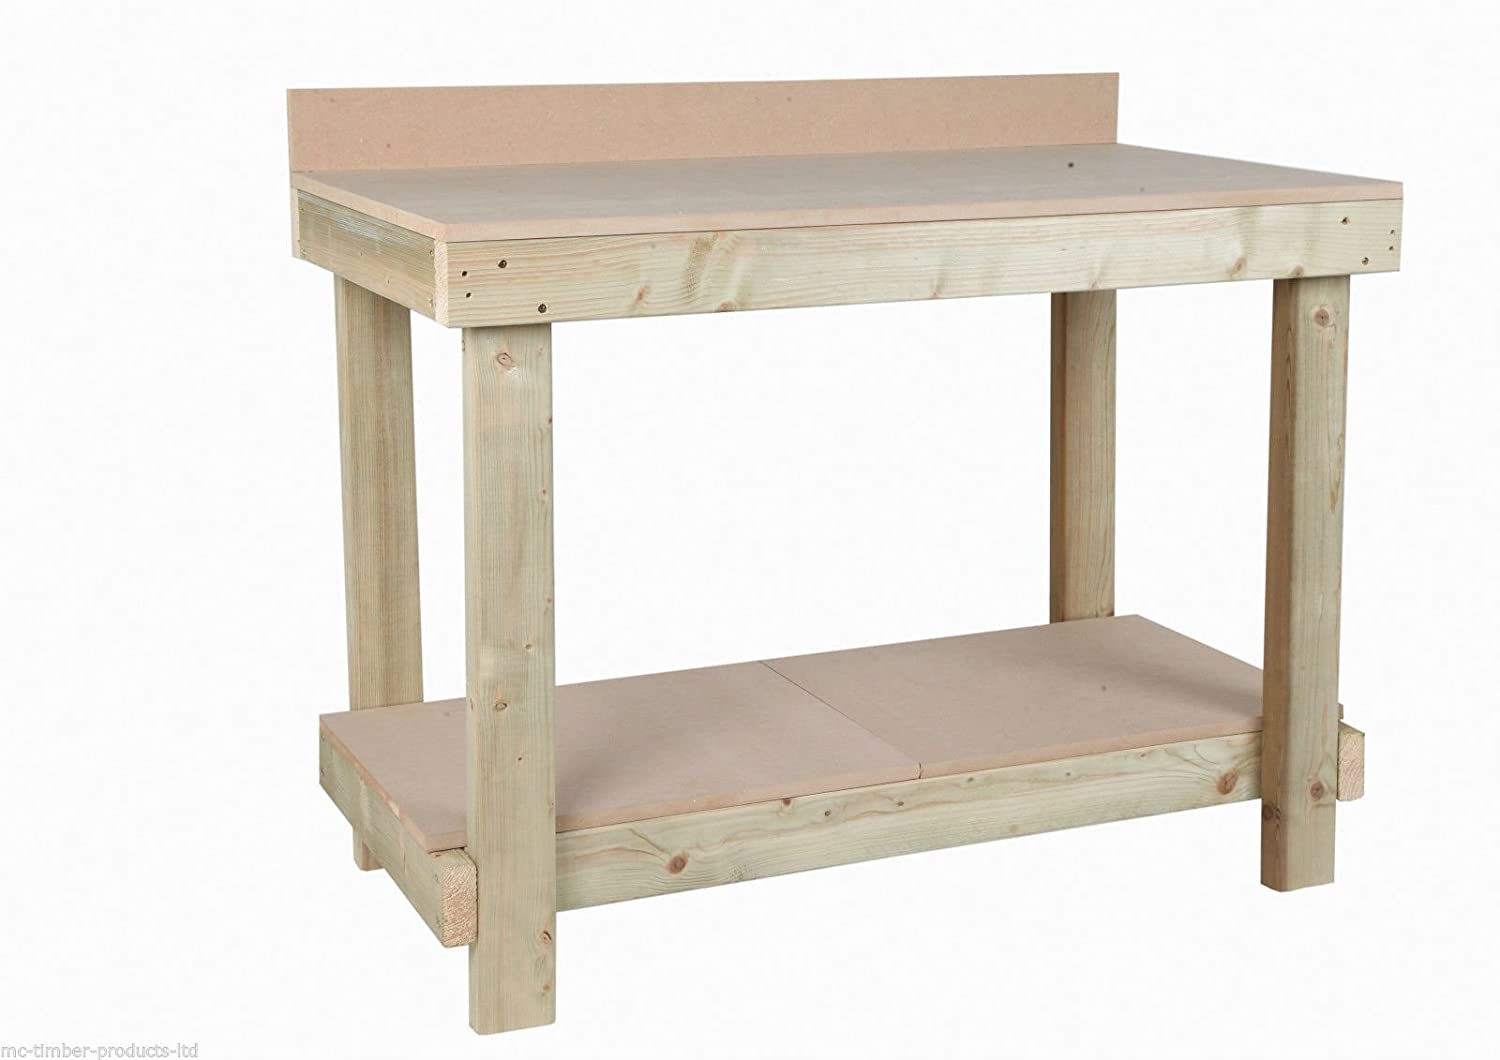 MC TIMBER PRODUCTS LTD 4ft WOODEN WORK BENCH MDF TOP Rear Upstand - HANDMADE IN UK